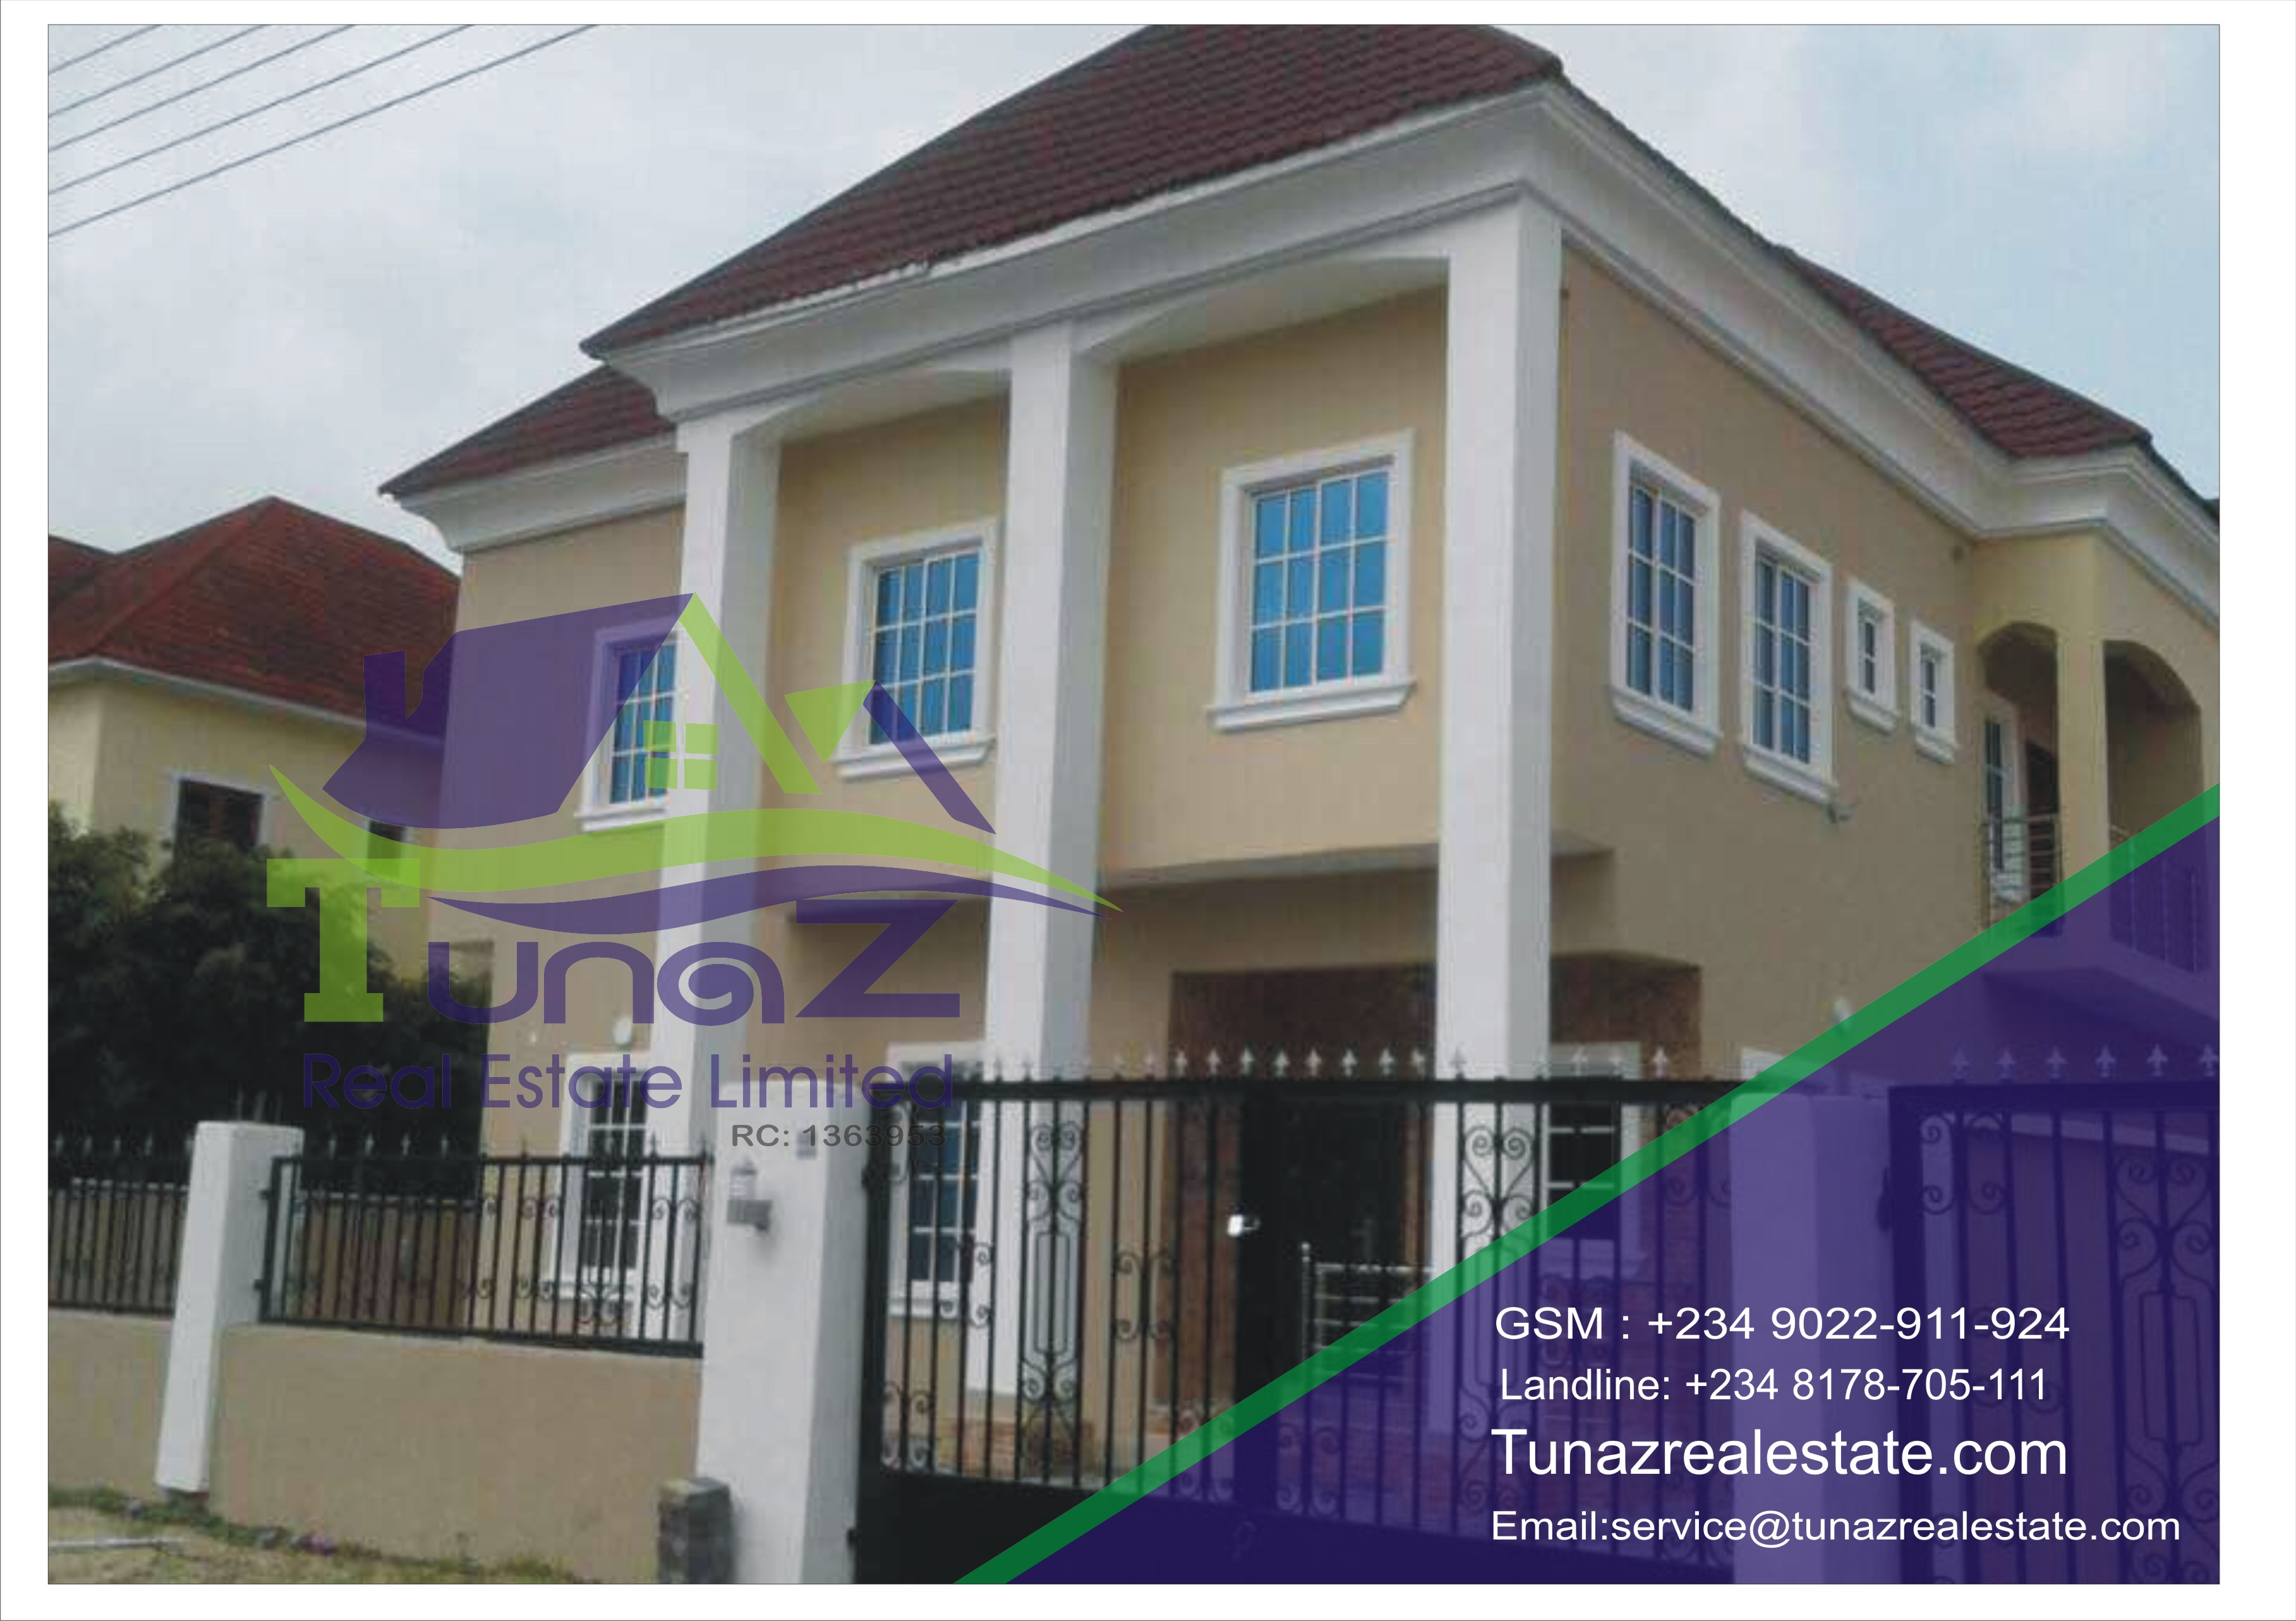 A 5 (2 Units) Bedroom Fully Detached Duplexes With A BQ And It Is Tastefully Finished With Large Car Packs And Spaces For A Pool Is For Sale